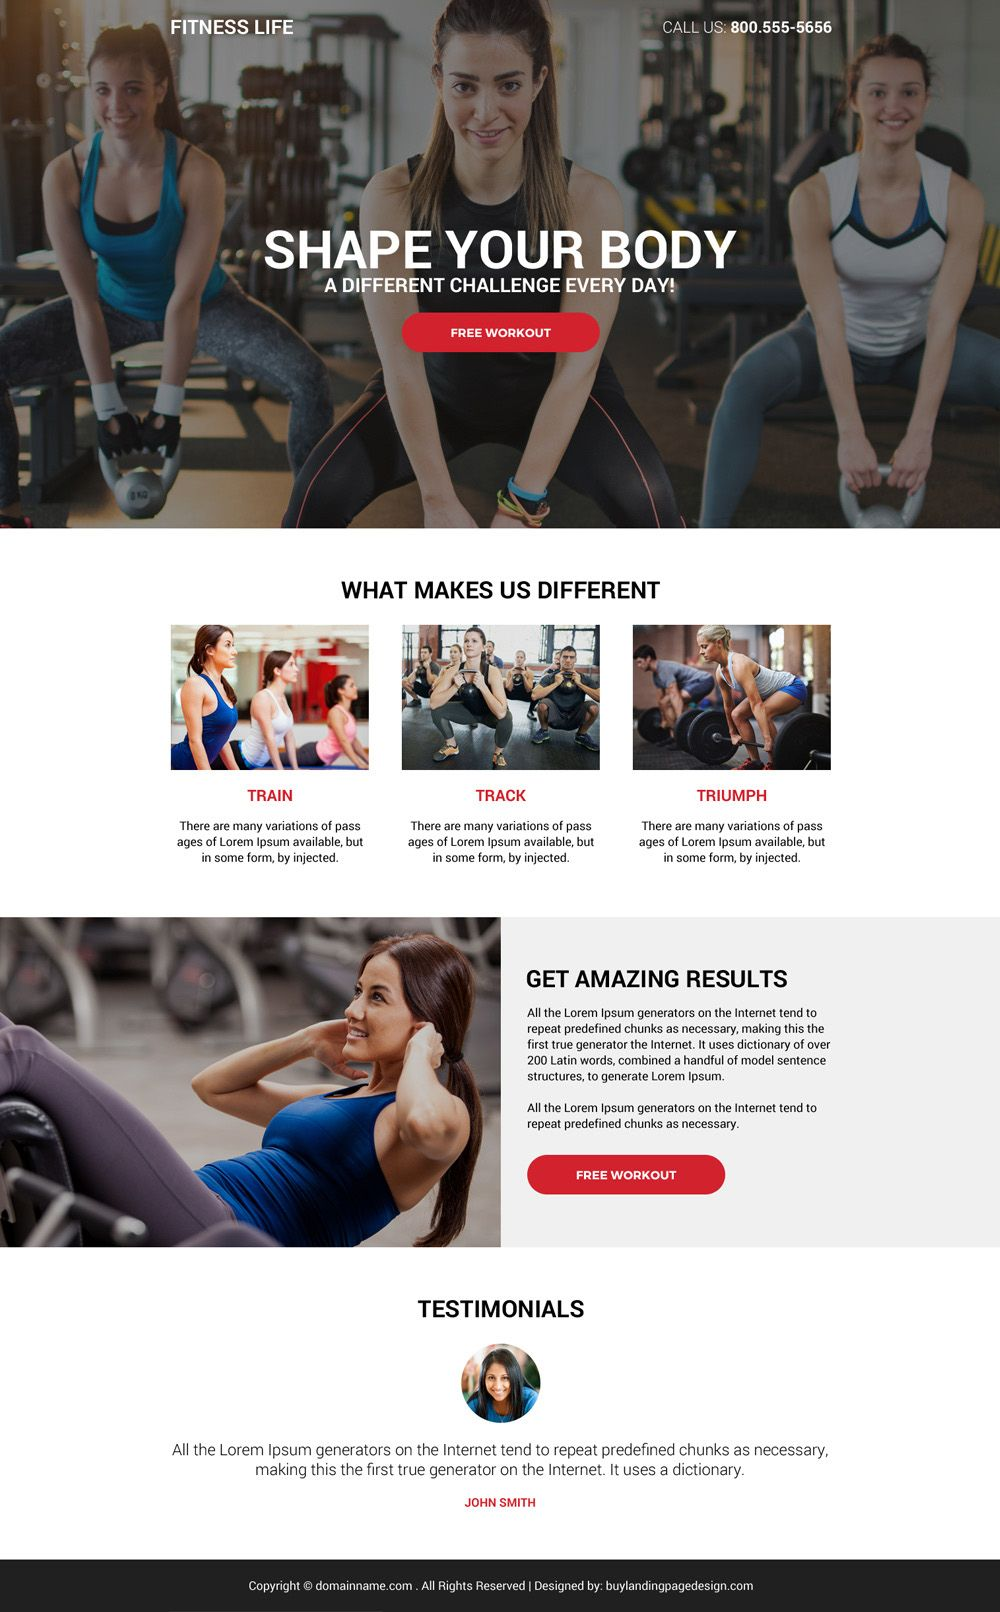 Download The Best Health And Fitness Life Responsive Landing Page Design At An Affordable Price From Https Www Buylandingpagedesign Com Buy Best Health And Fi